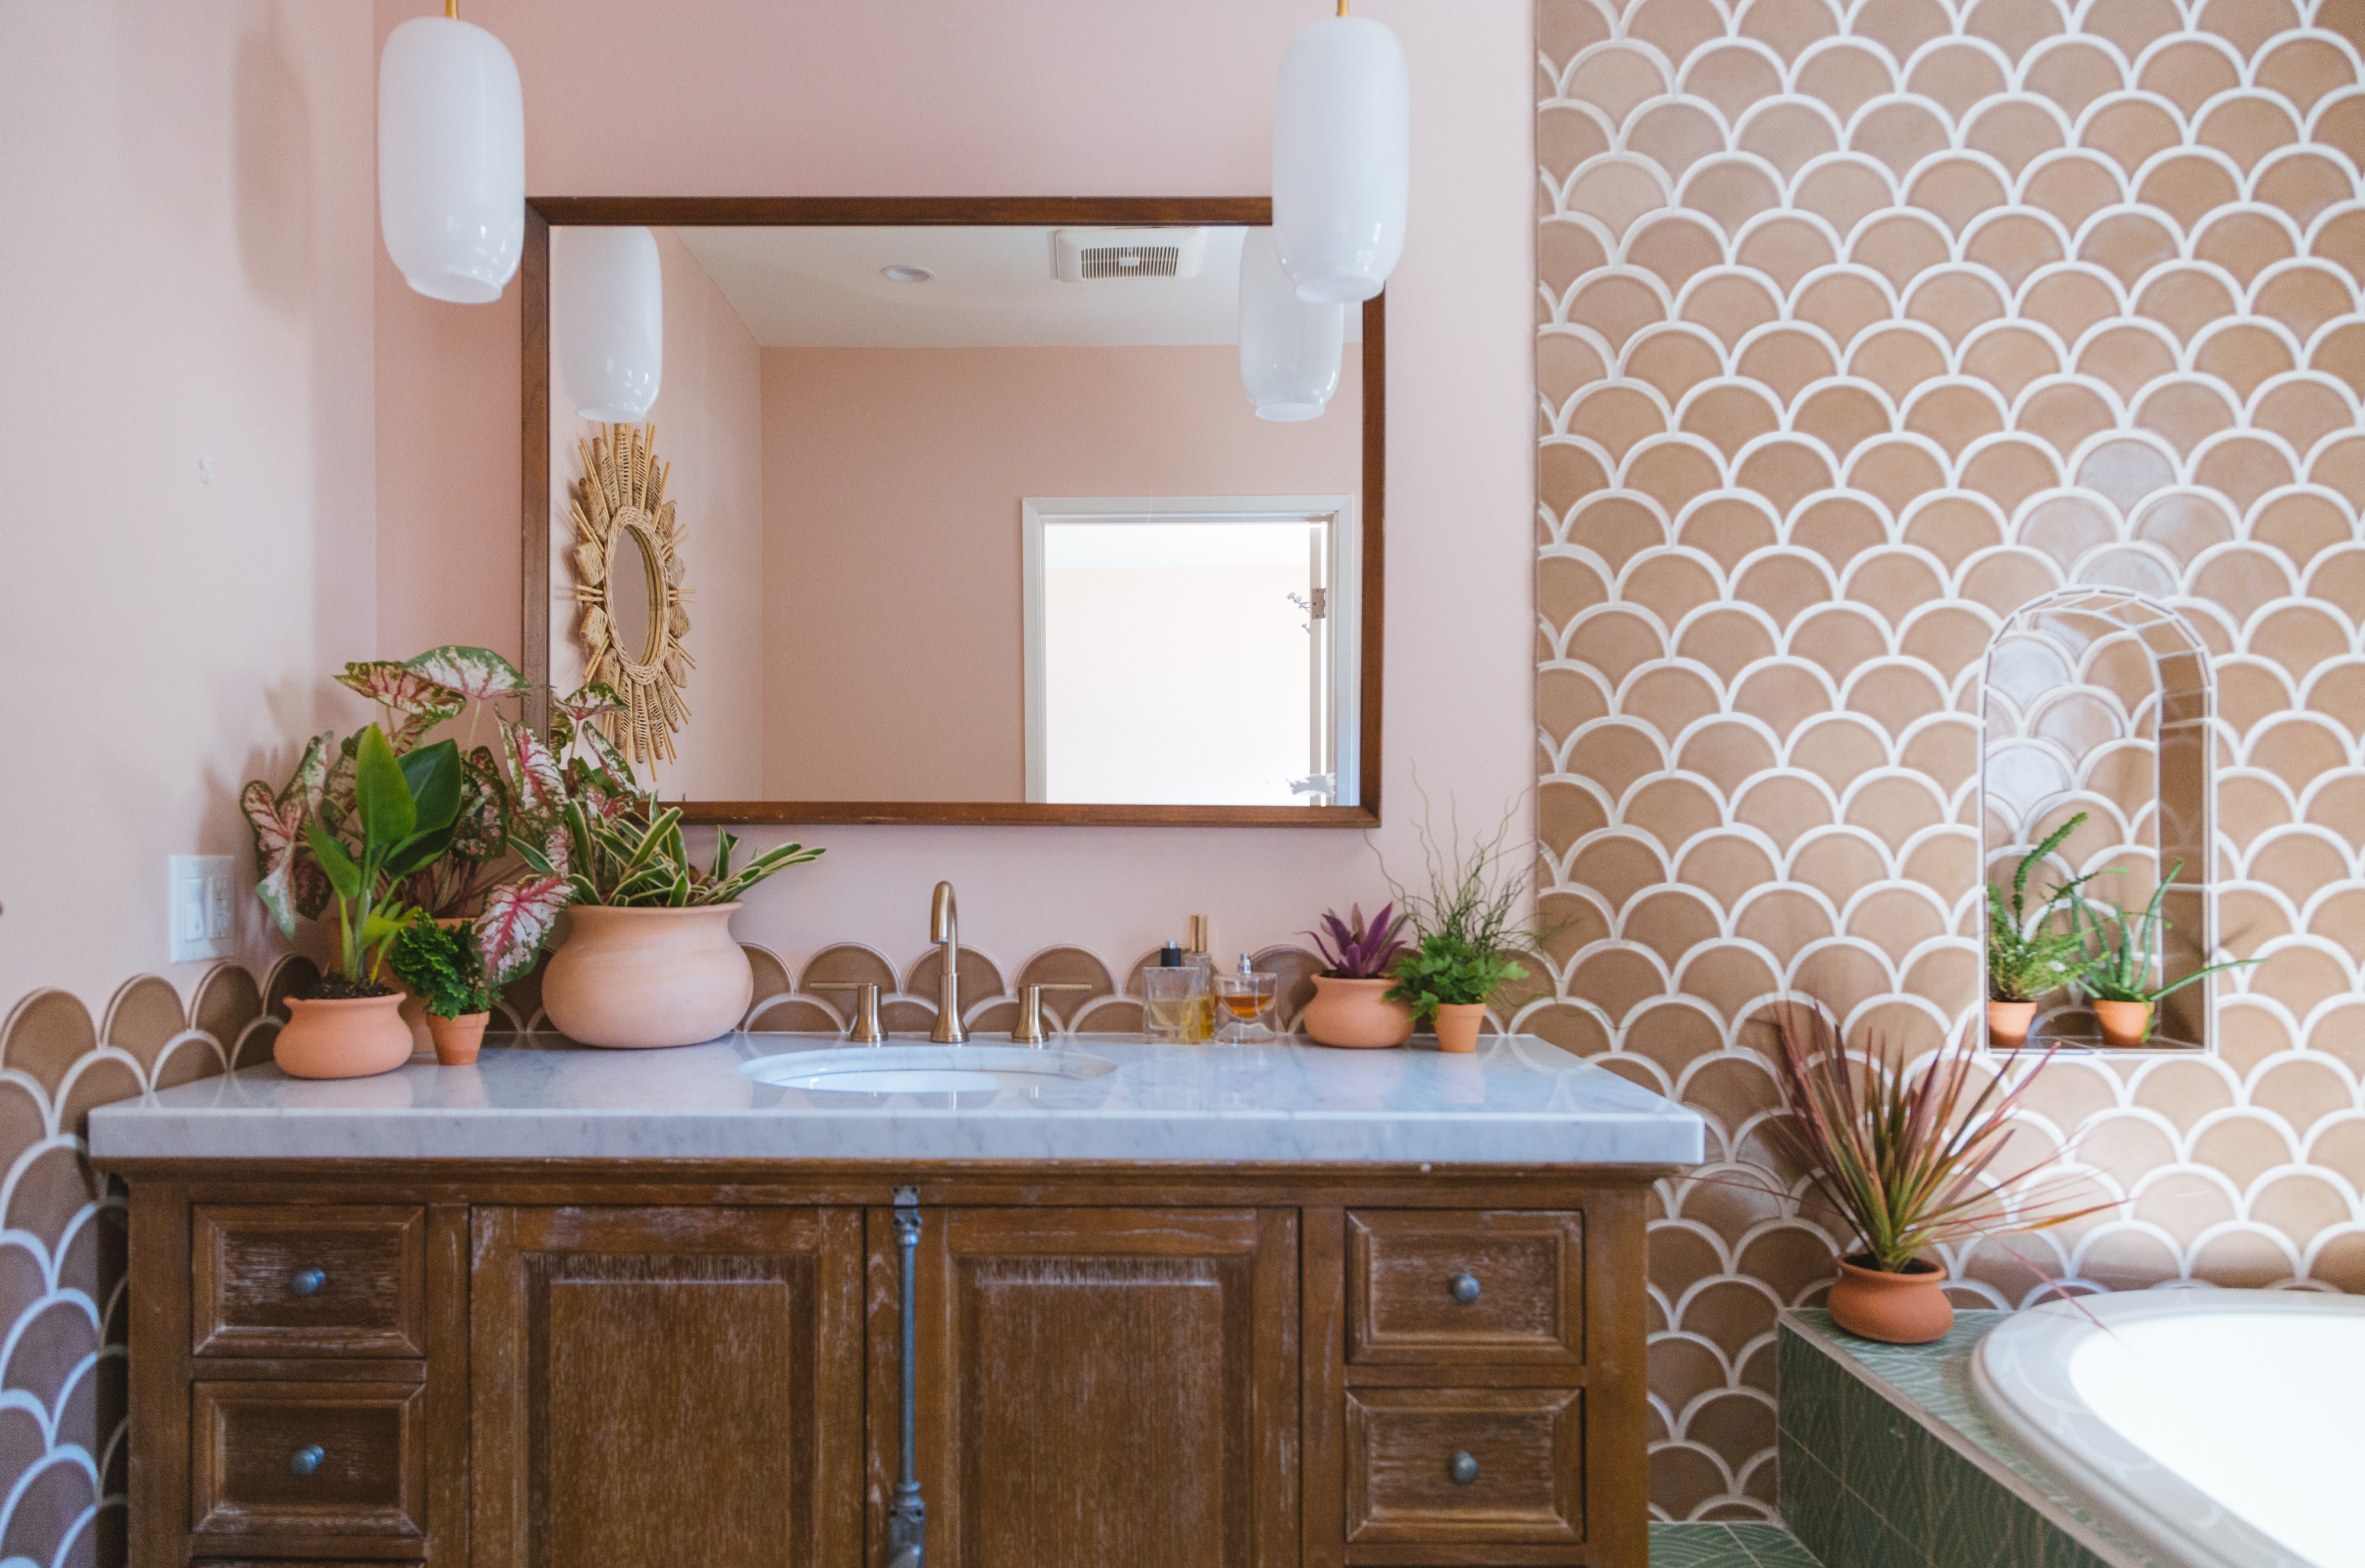 Q3_2018_image_residential_influencer_full-rights_Justina_Faith_Blakeney_parents_condo_masterbath_wall_tile_nutmeg_ogee_drop_floor_handpainted_summit_green_motif_vanity_arched_niche_detail.jpg?mtime=20181008160918#asset:420254